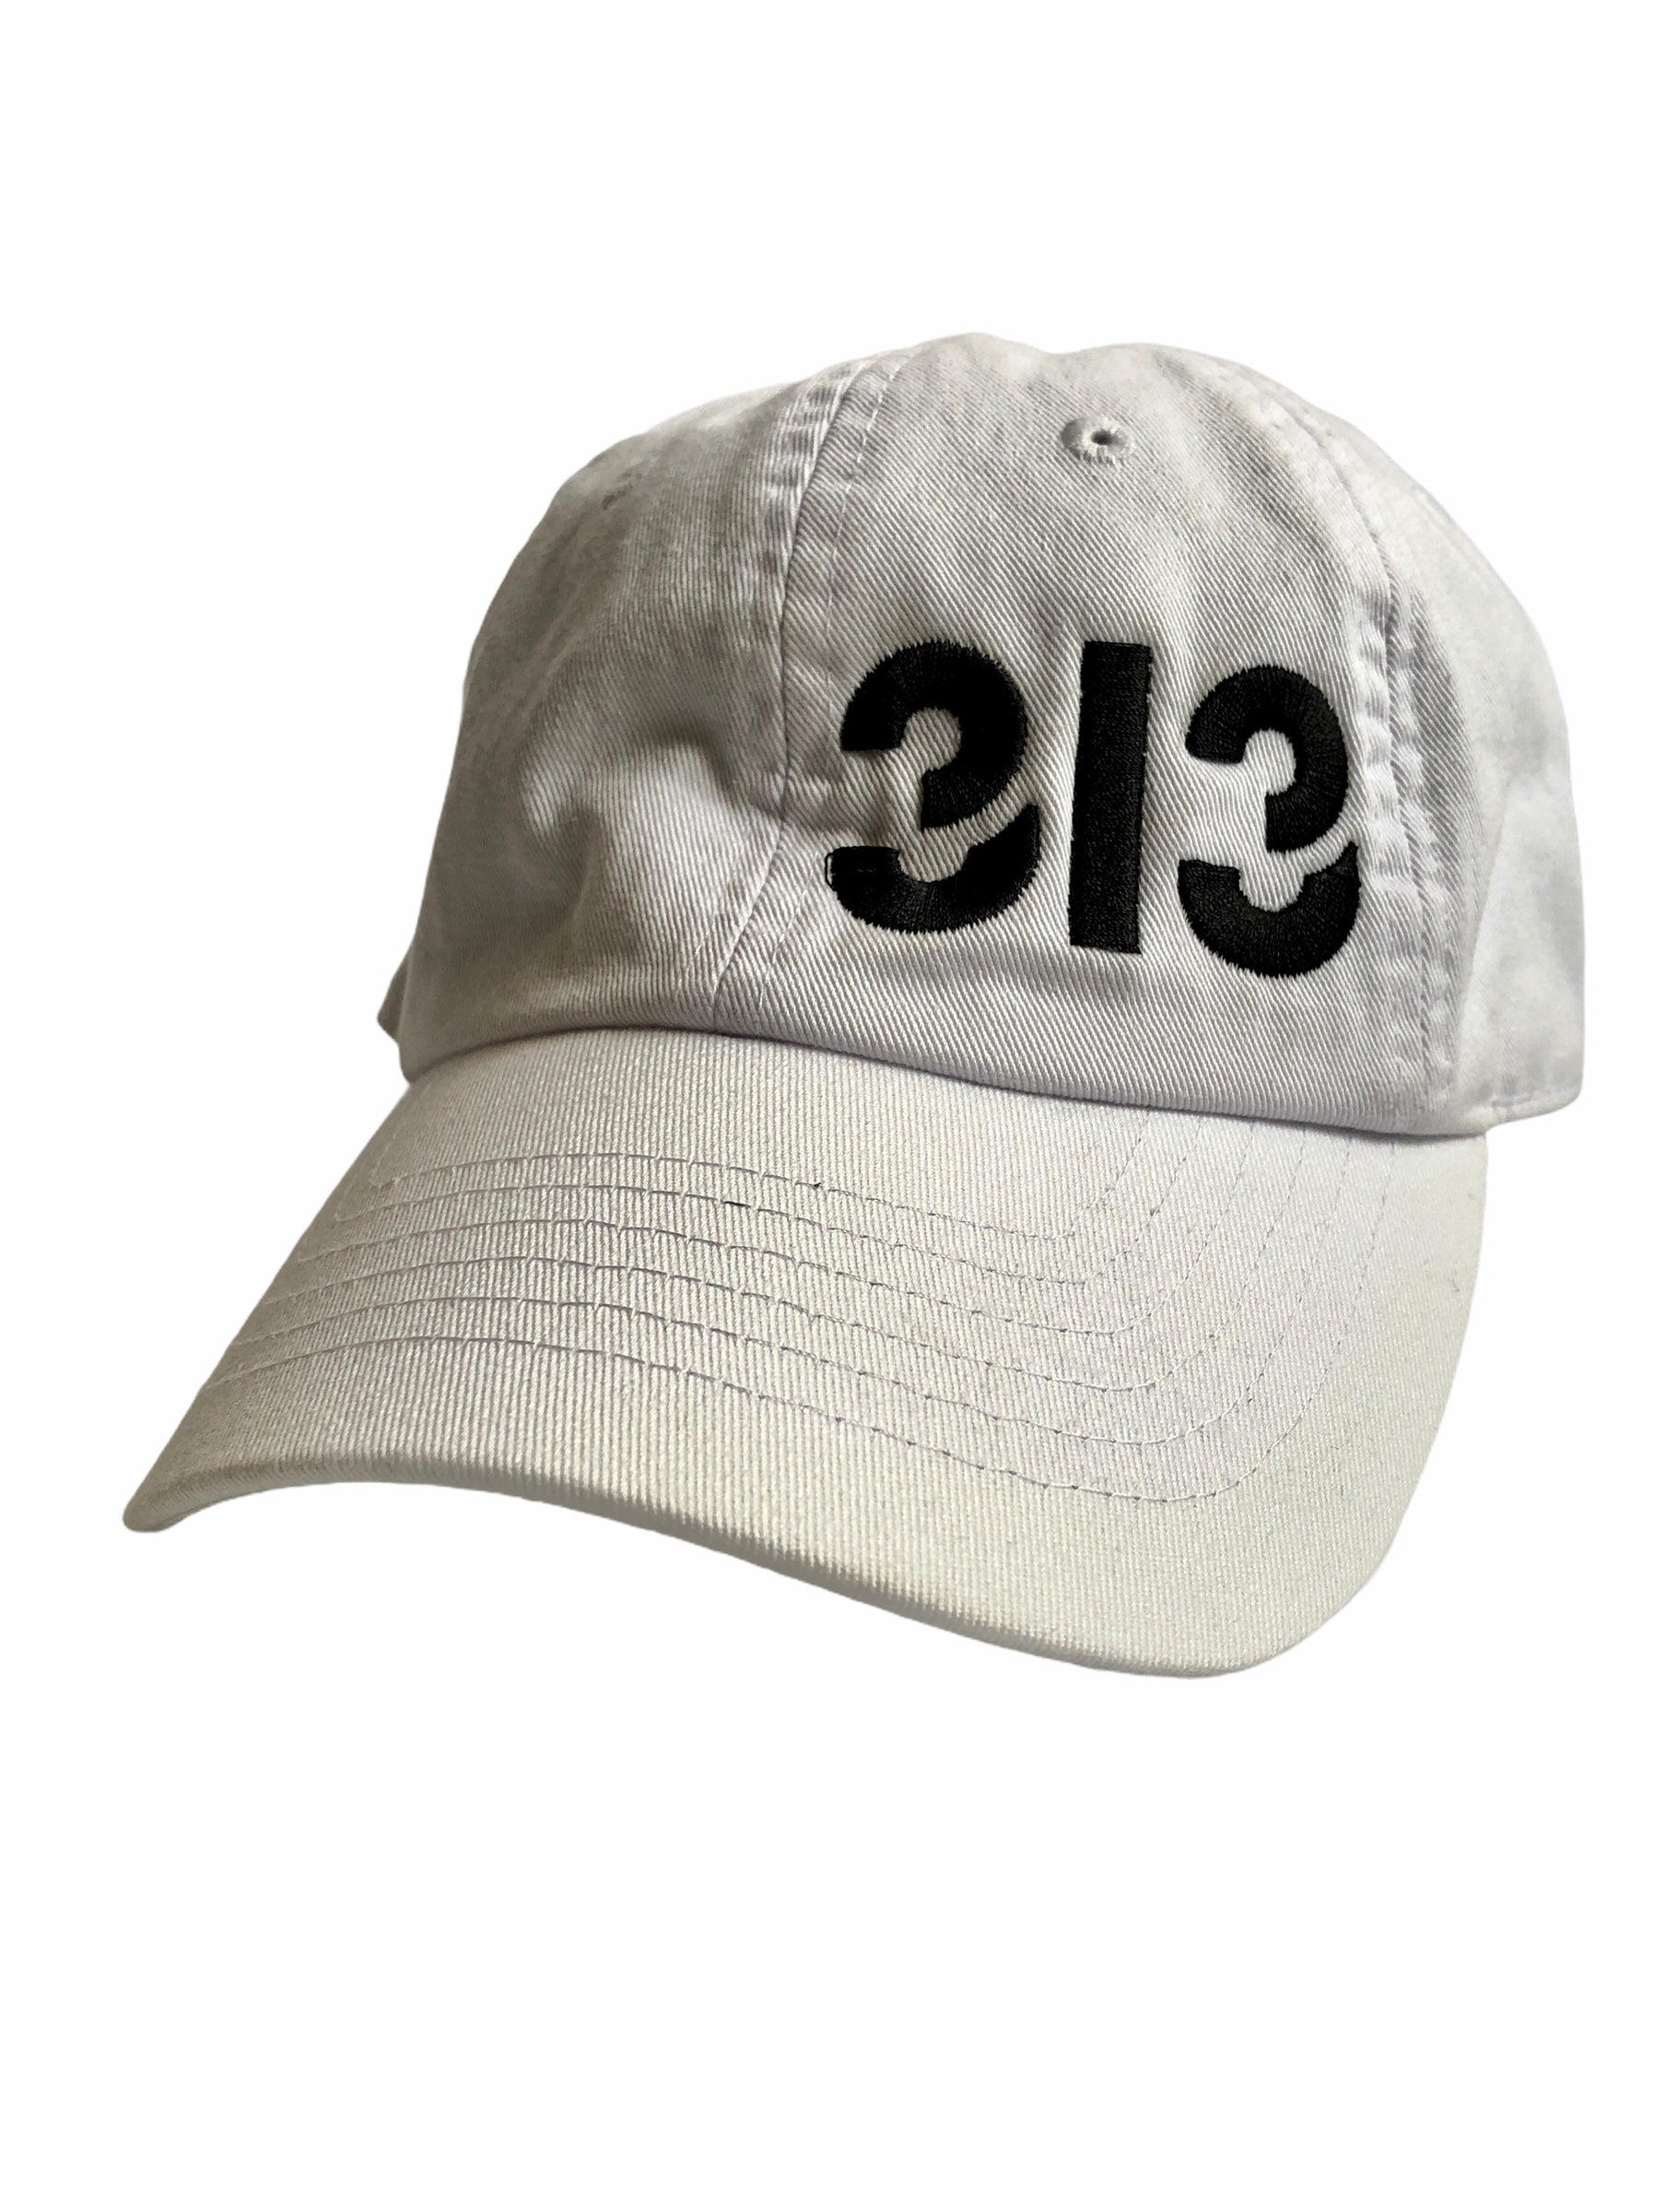 313 Champion Twill Cap - Black + White - Pure Detroit